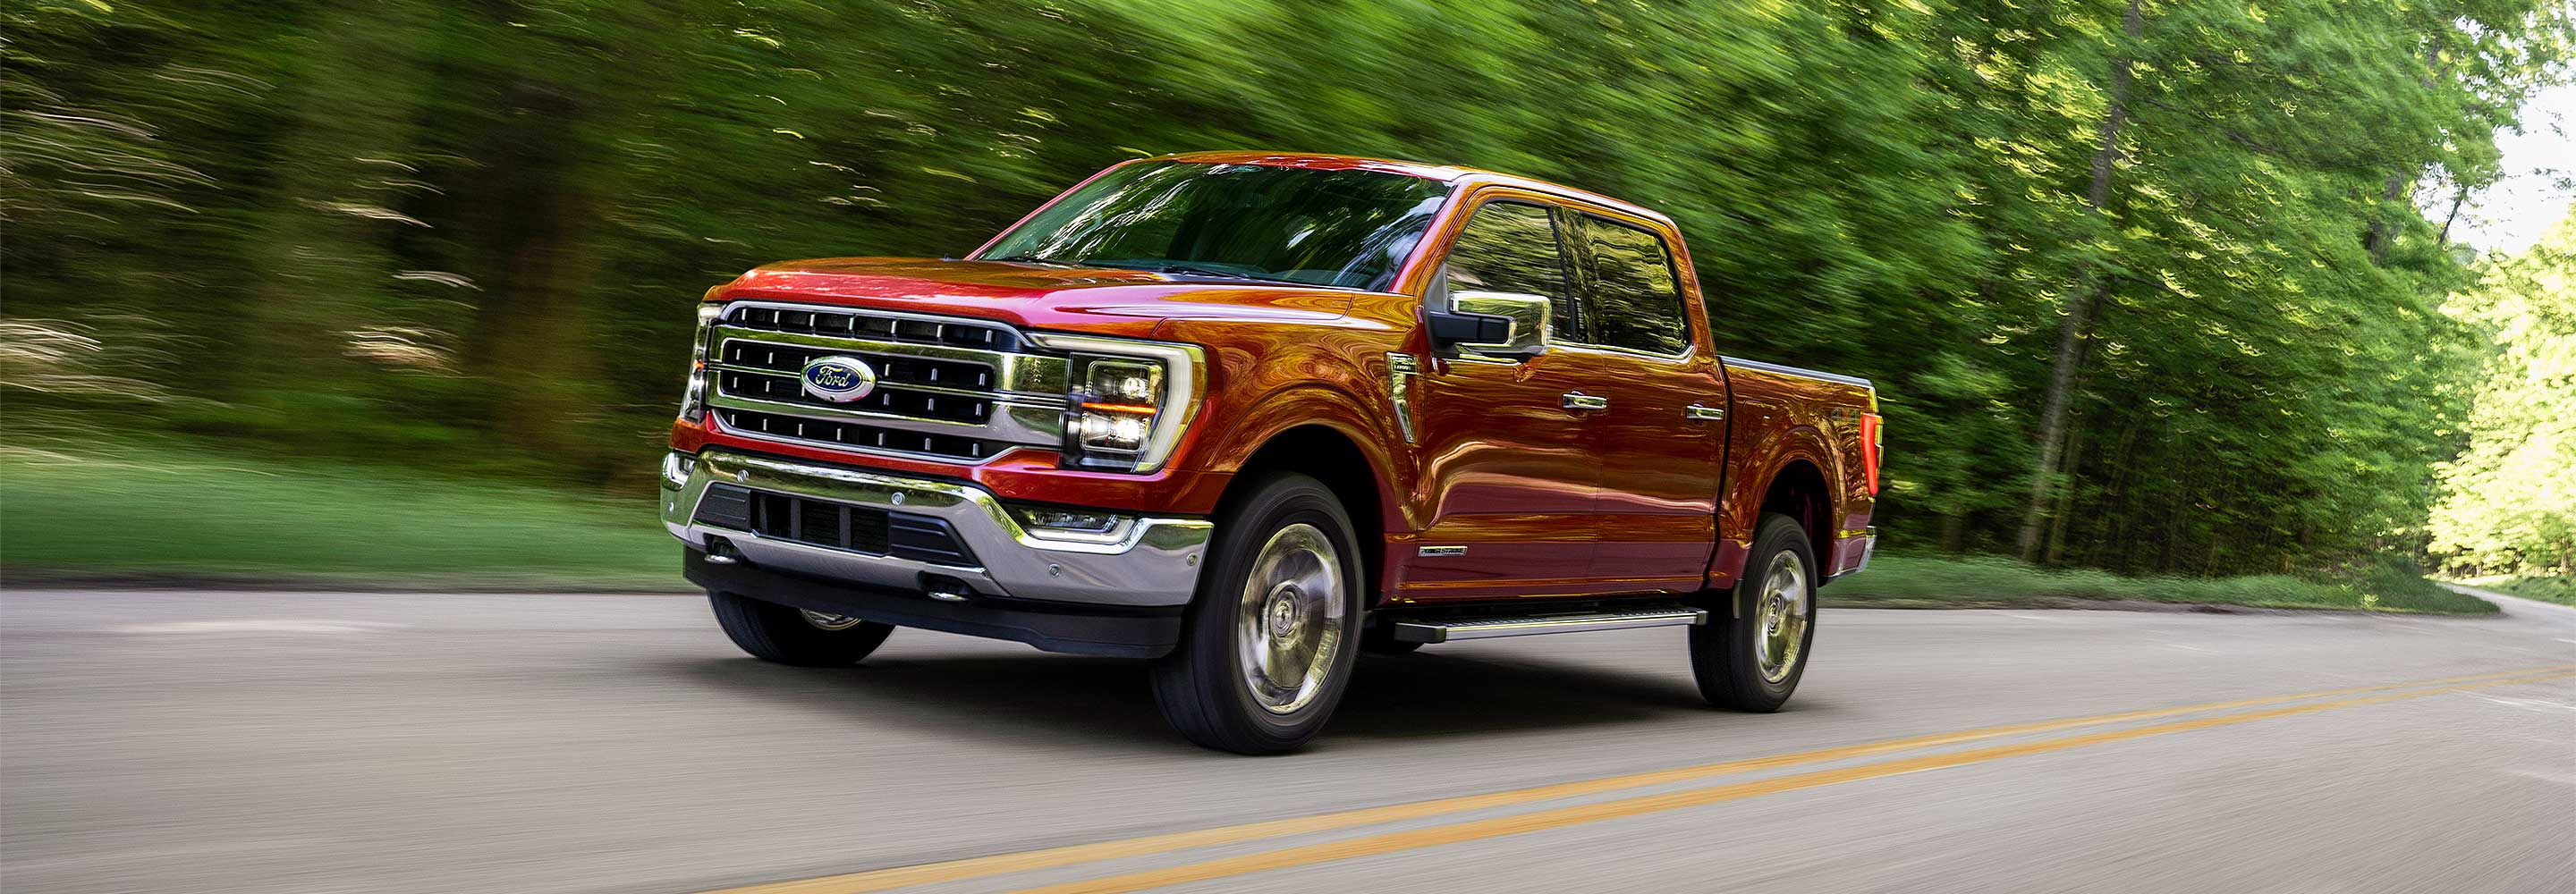 The Iconic Ford F-150 Gets a Hybrid Option and Modern Updates